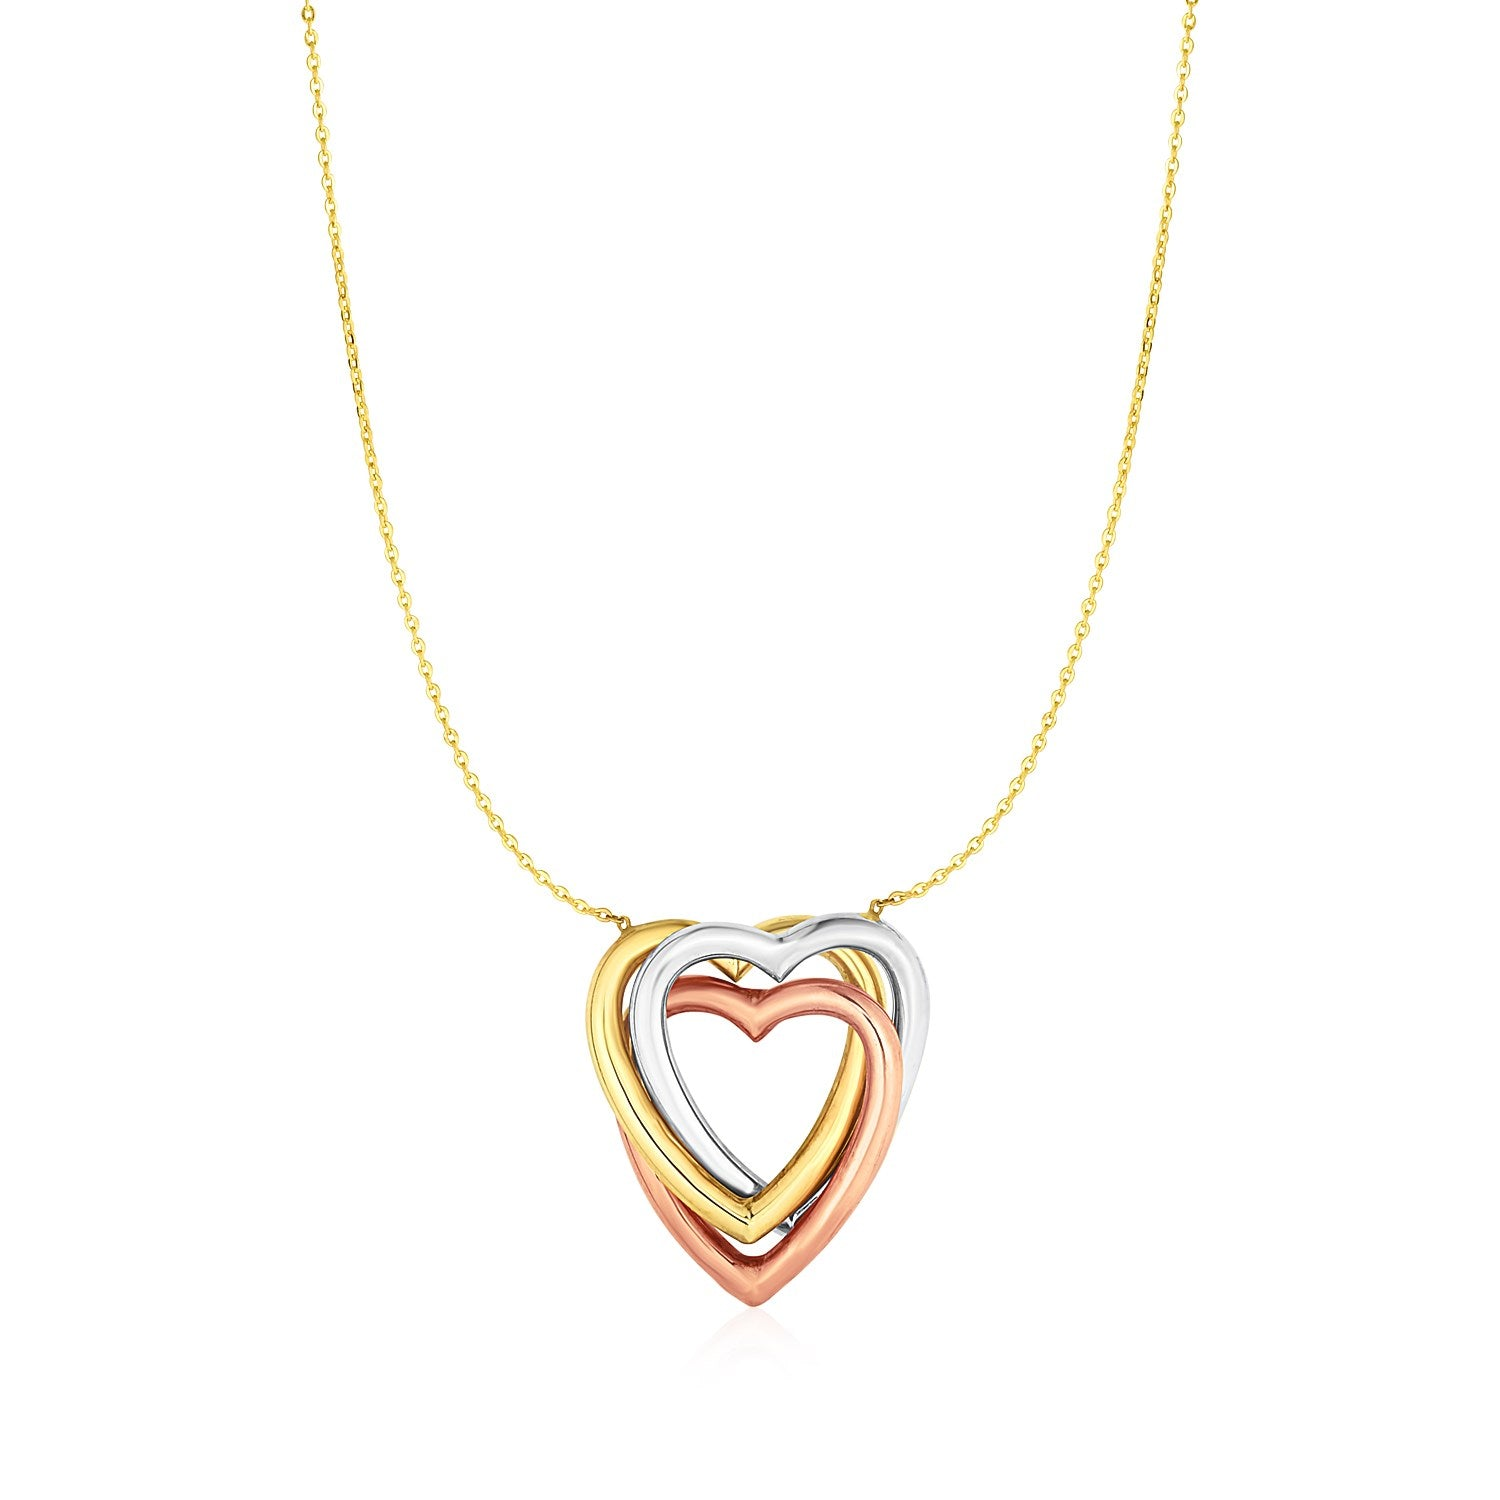 Necklace with Heart Pendant in 10K Tri Color Gold